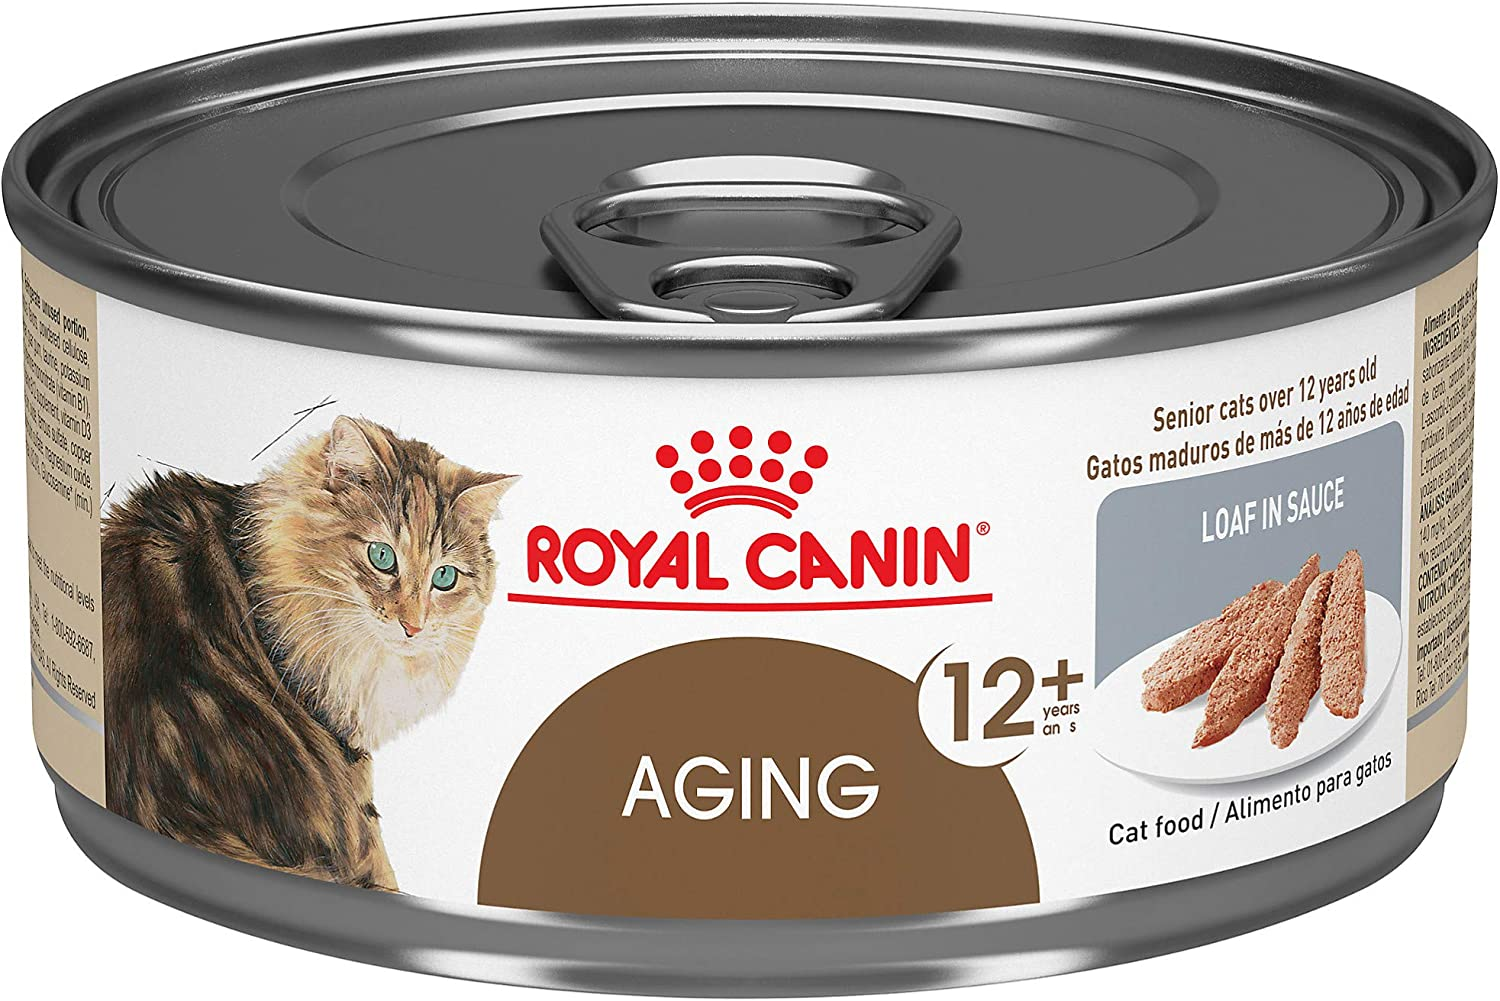 Royal Canin Feline Health Nutrition Aging 12+ Loaf In Sauce Canned Cat Food, 5.8 oz Can (Pack of 24)